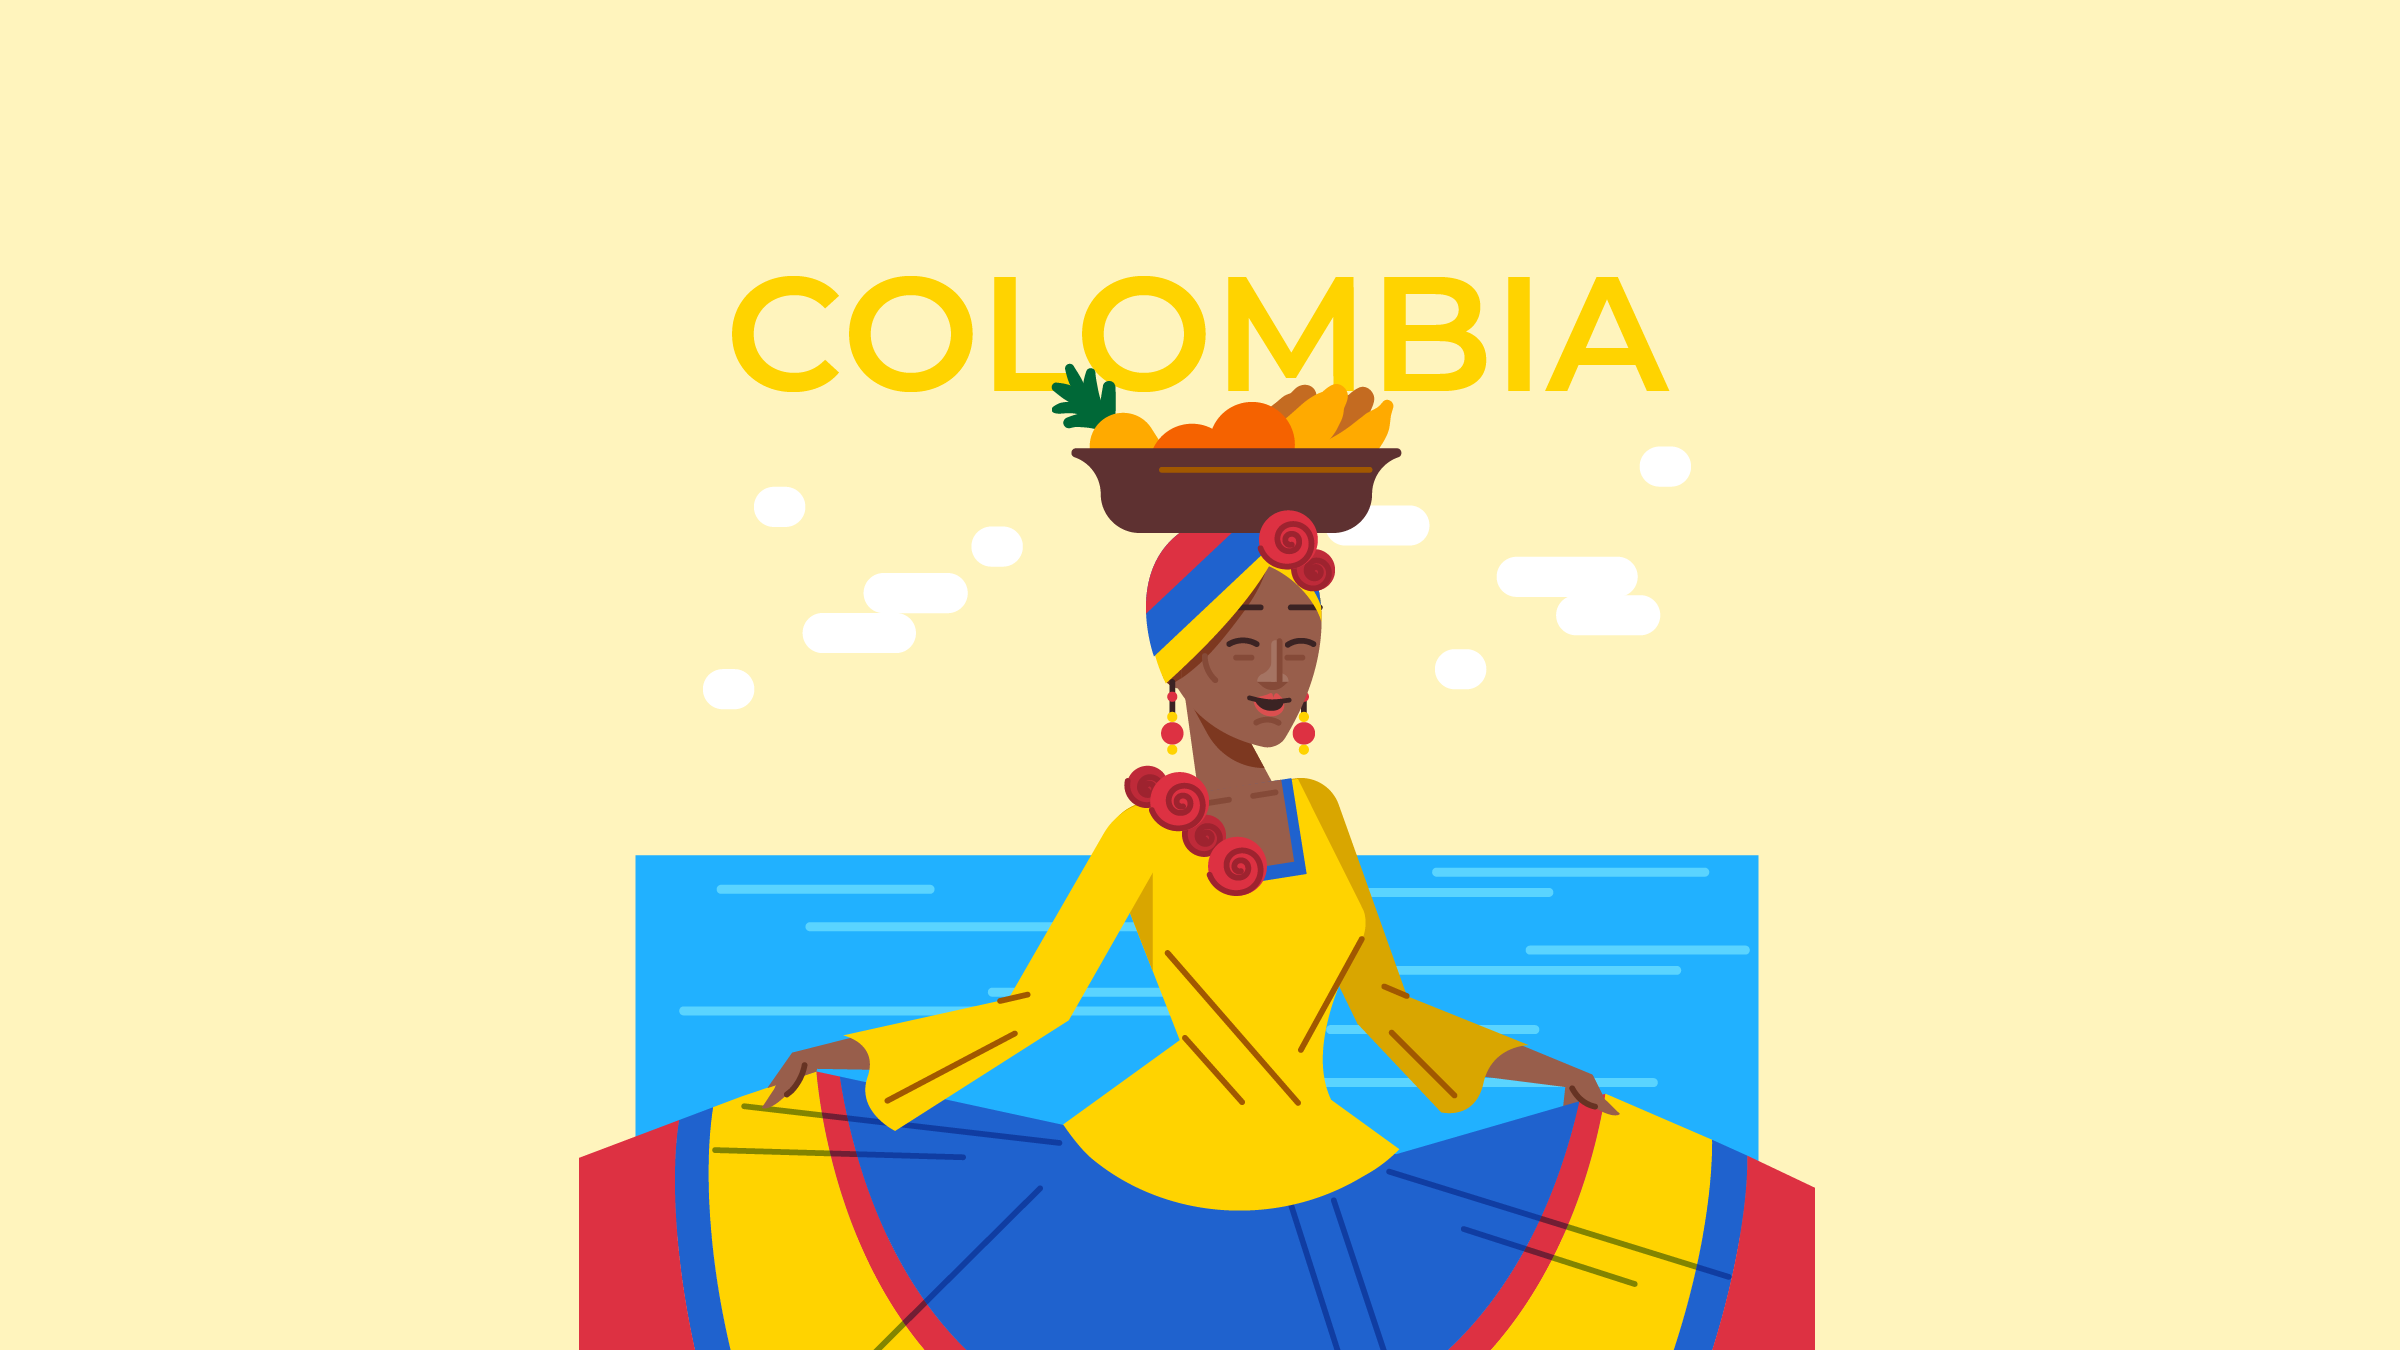 What language do Colombians